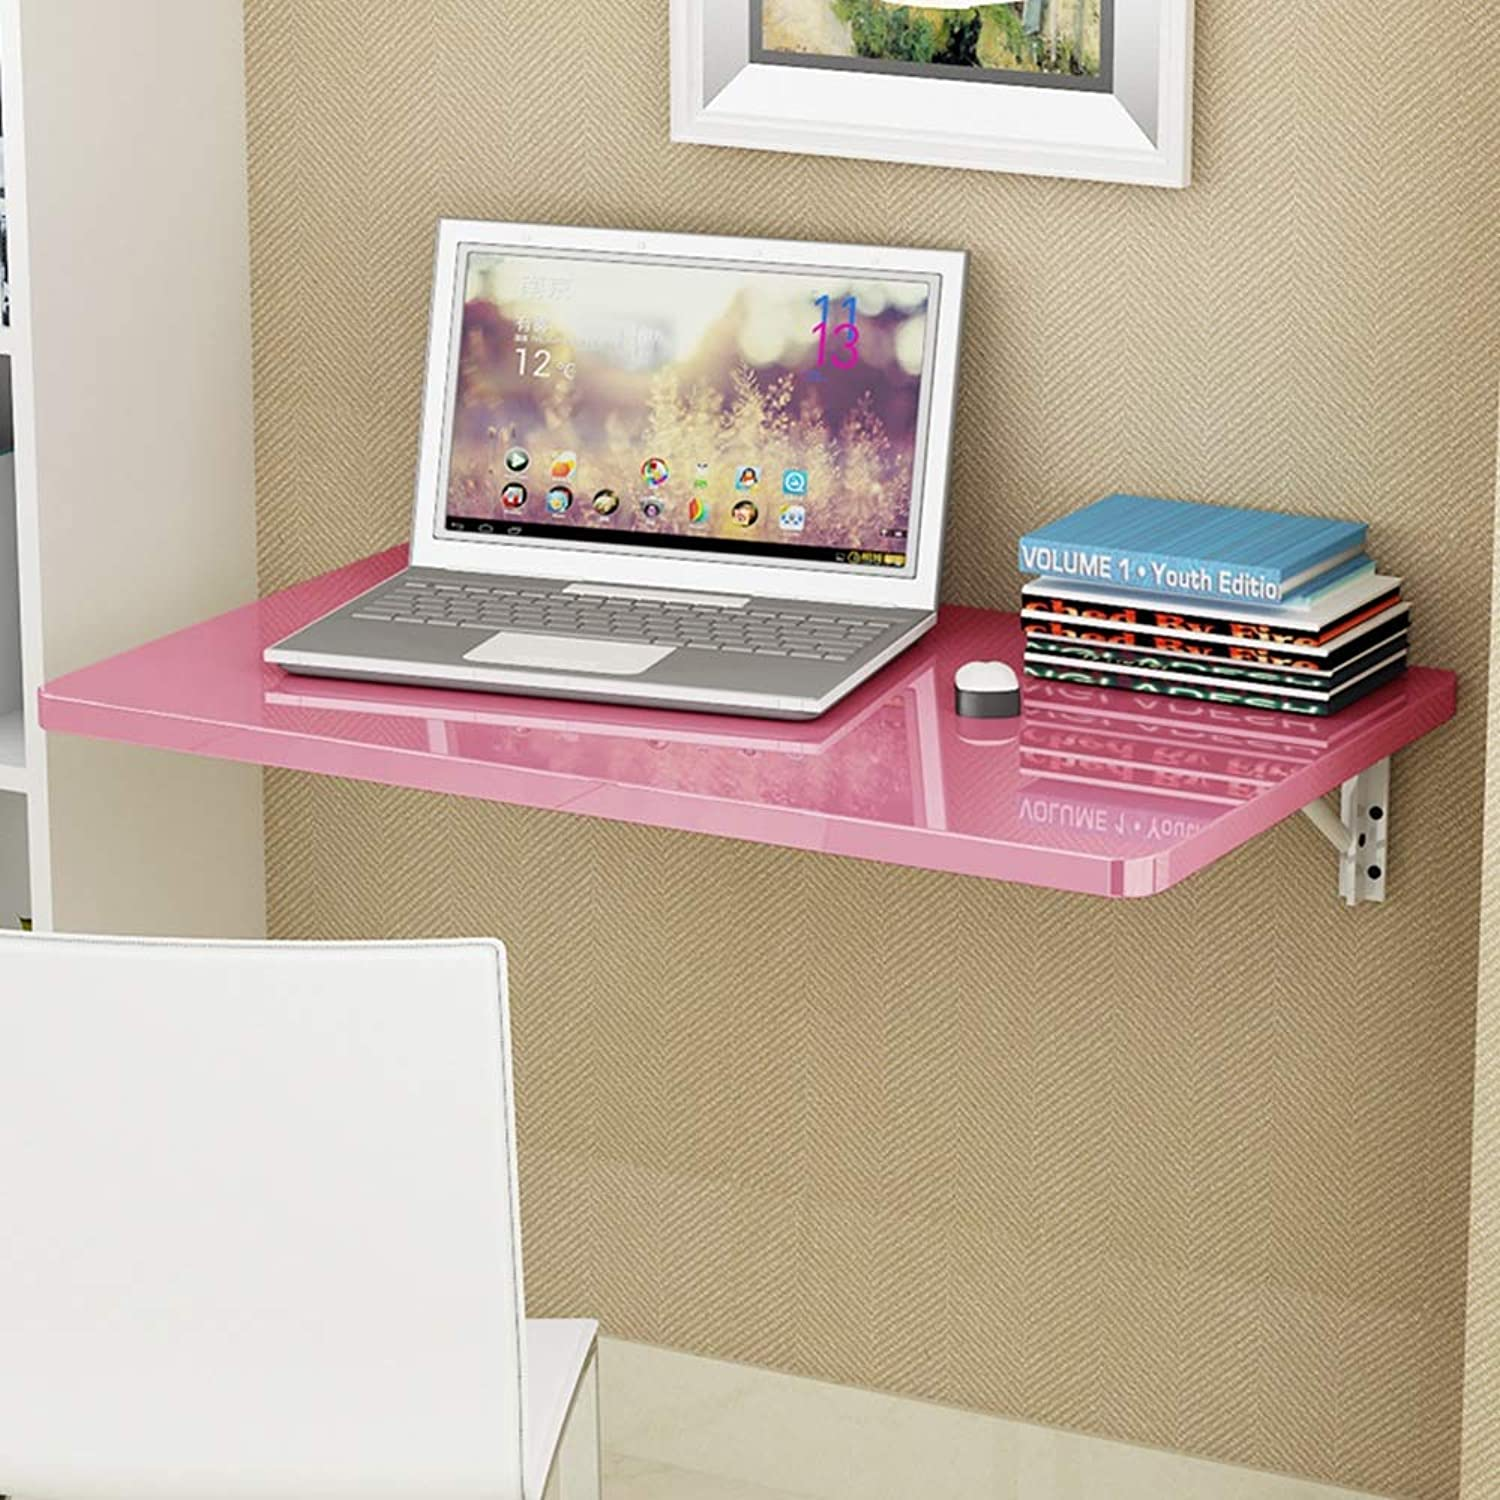 Coffee Table Wall Folding Table Wall-Mounted Drop-Leaf Table, Foldable Kitchen Laundry Room, Piano Paint, 4 colors, Multiple Sizes (color   Pink, Size   60  50 cm)